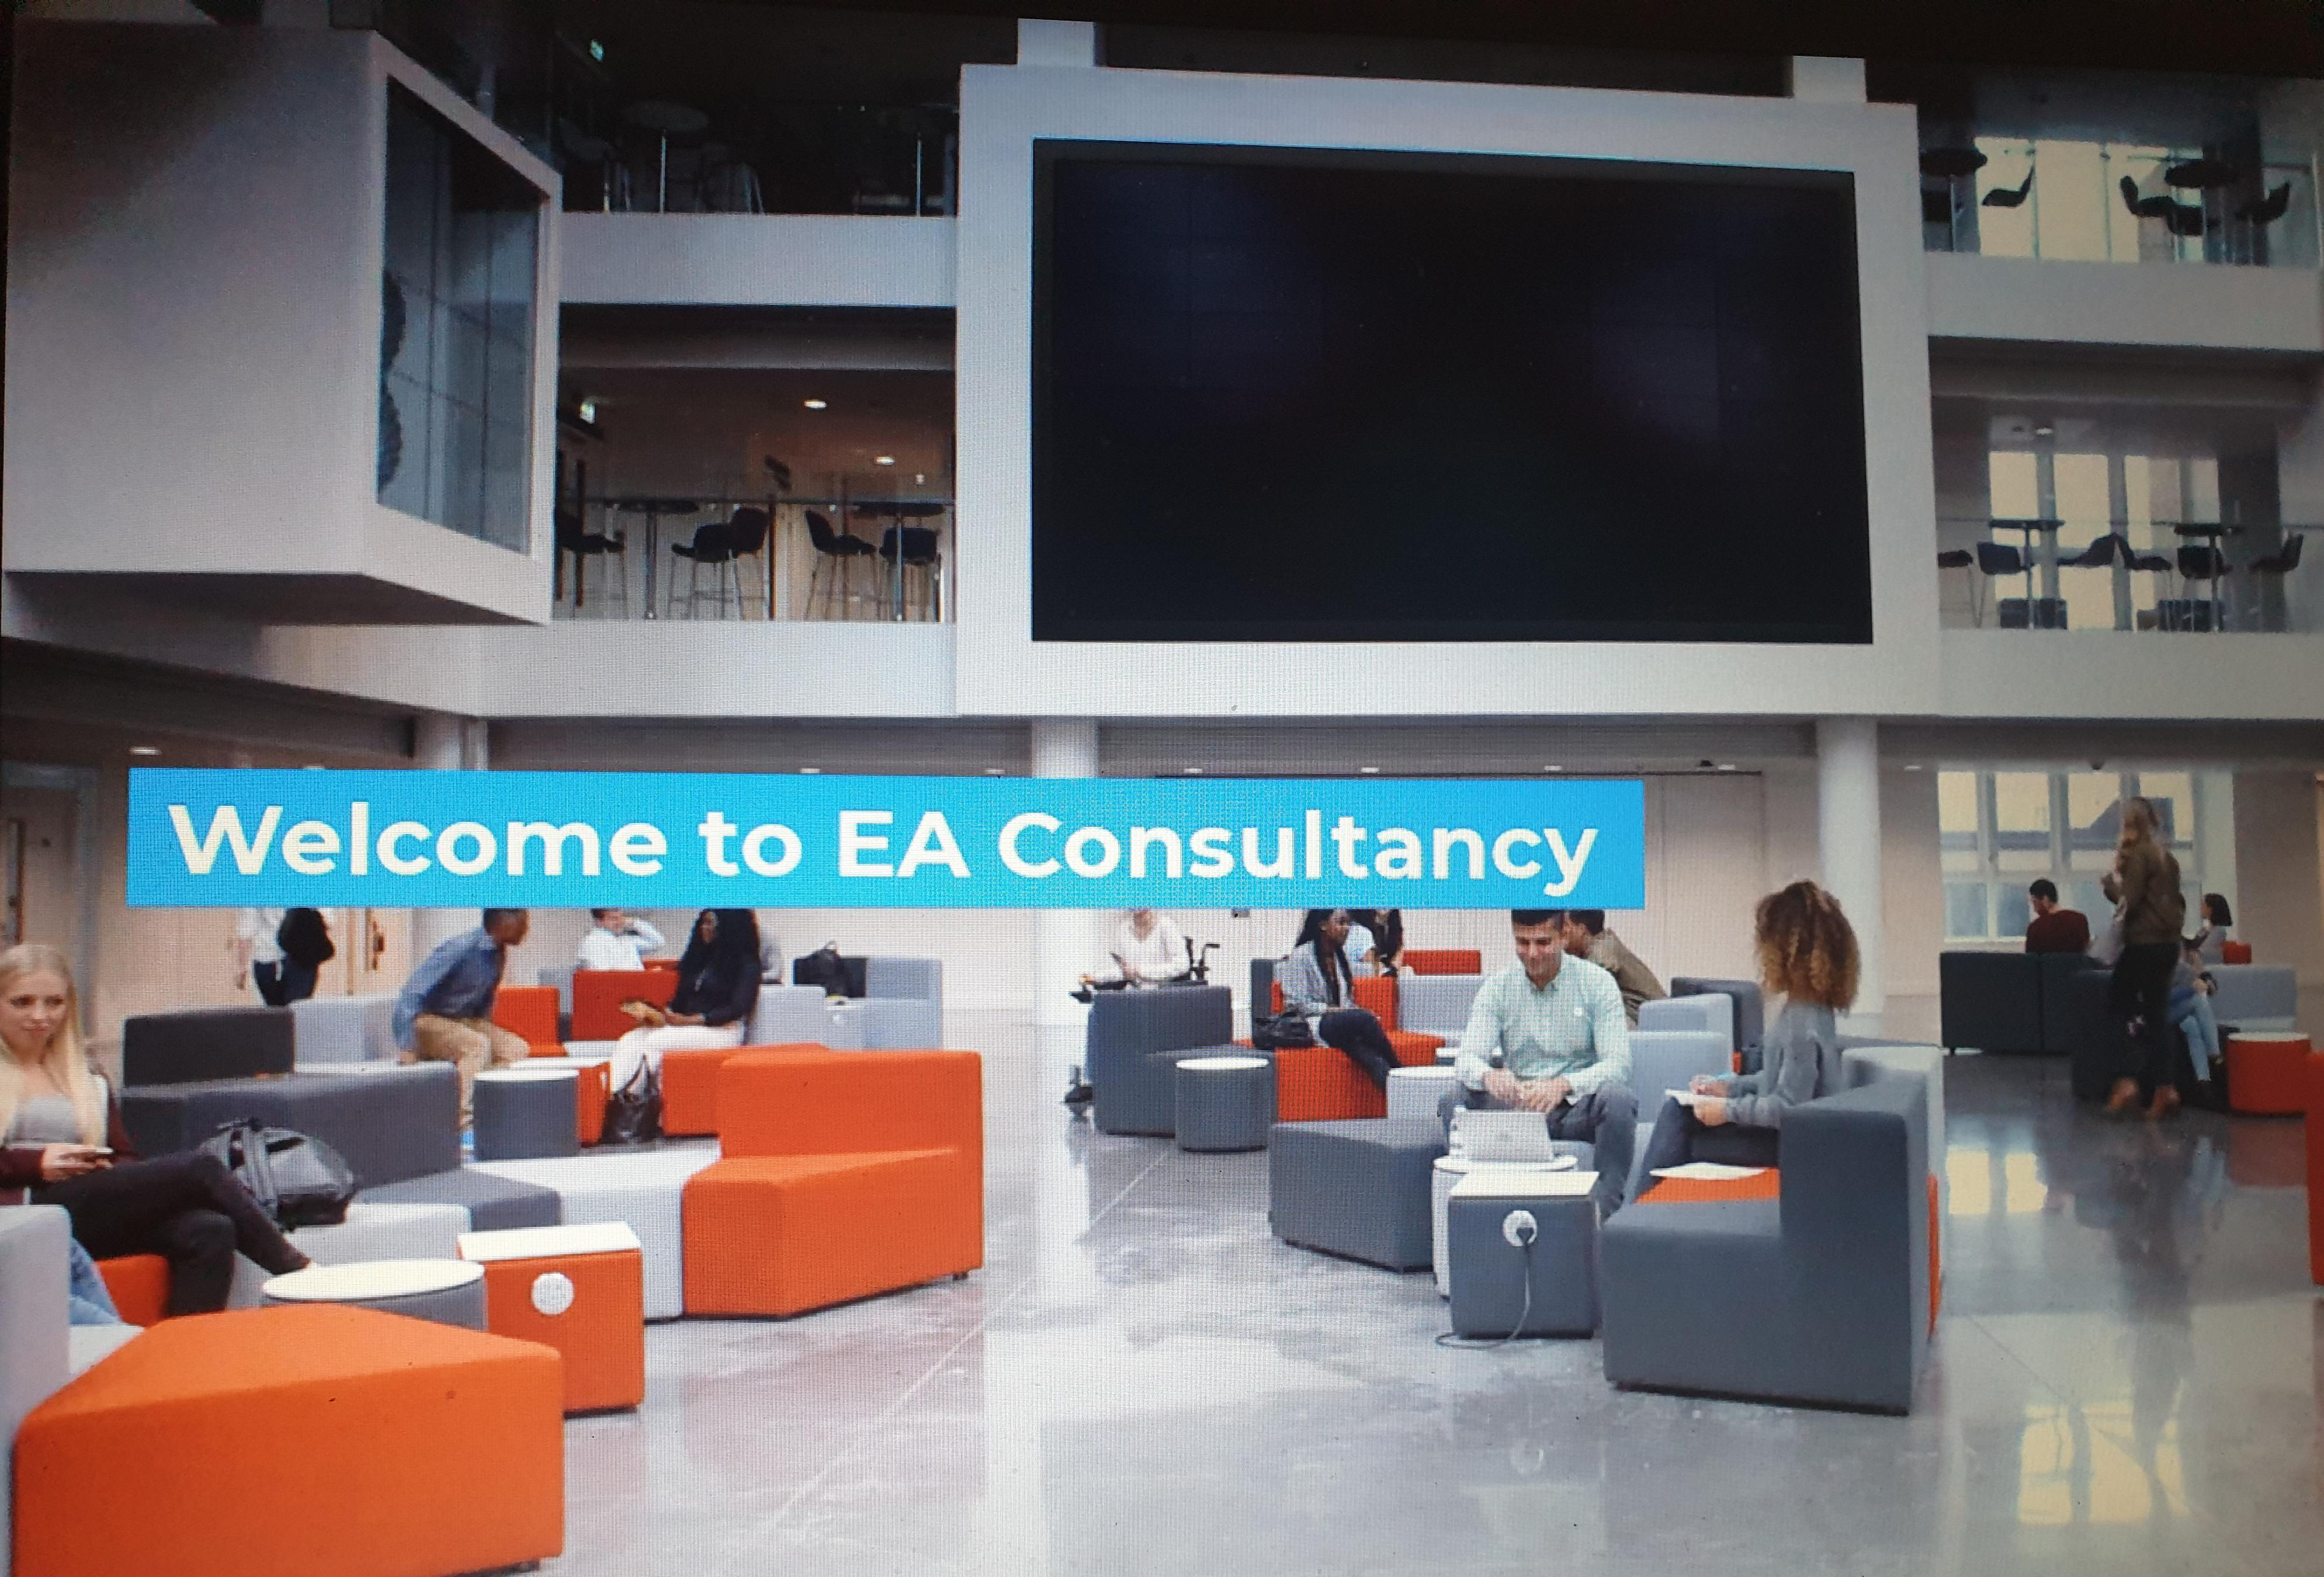 welcome to EA Consultancy